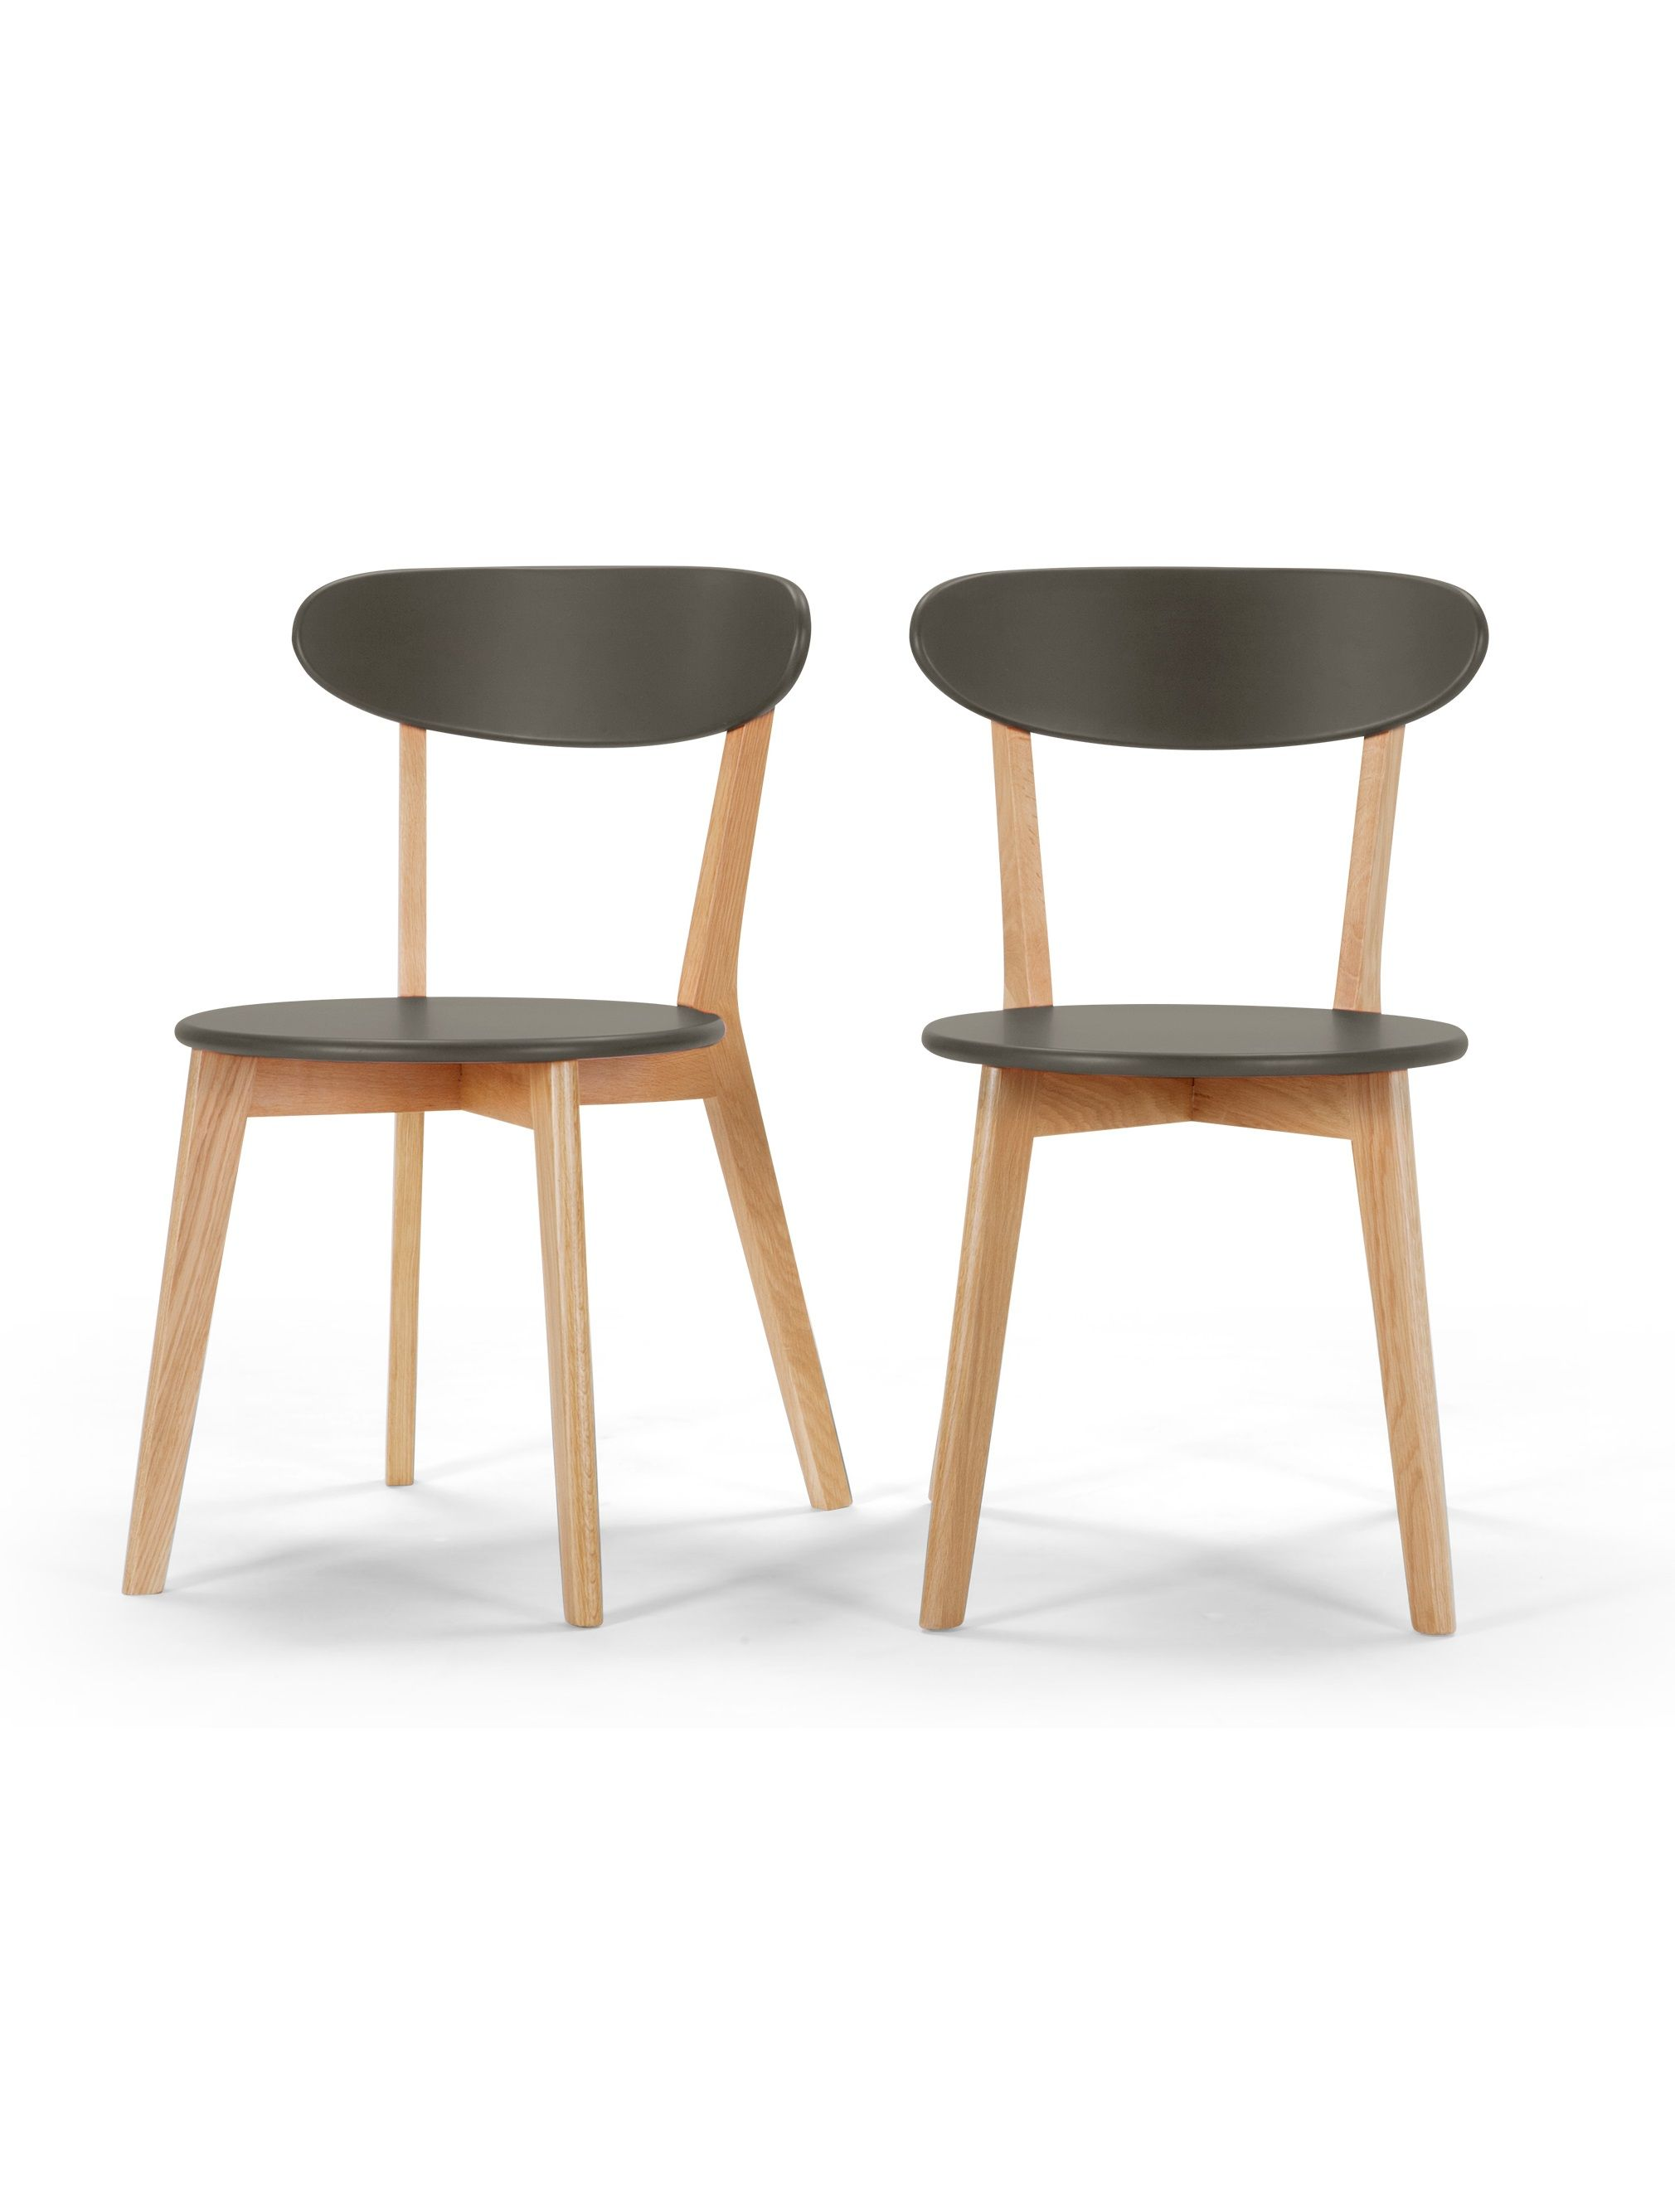 Genial 2 Fjord Dining Chairs In Oak And Grey. £99. MADE.COM